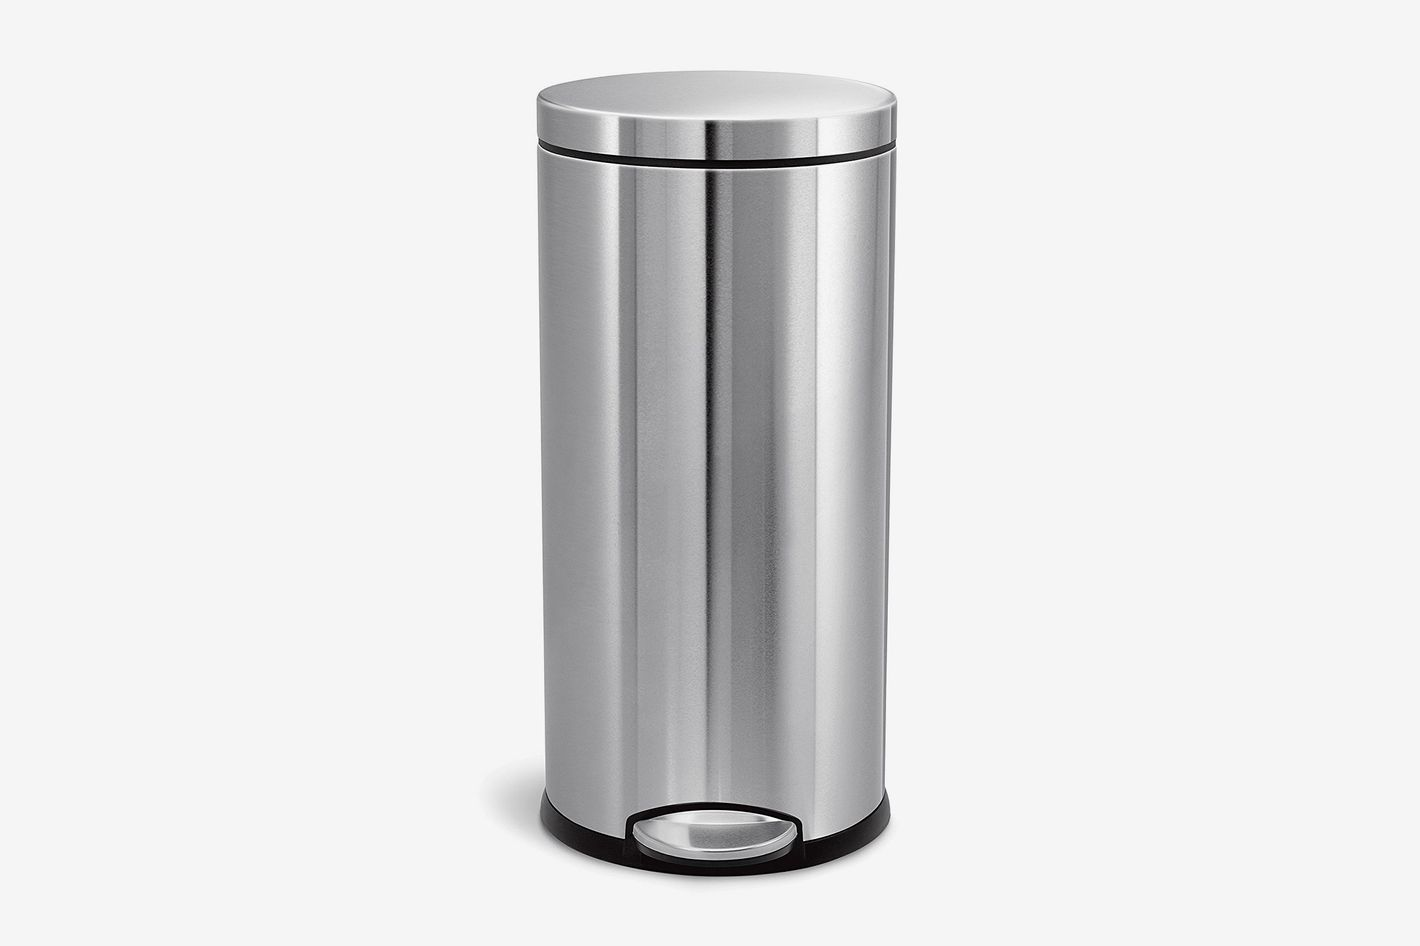 Simplehuman 30 Liter 8 Gallon Stainless Steel Round Kitchen Step Trash Can